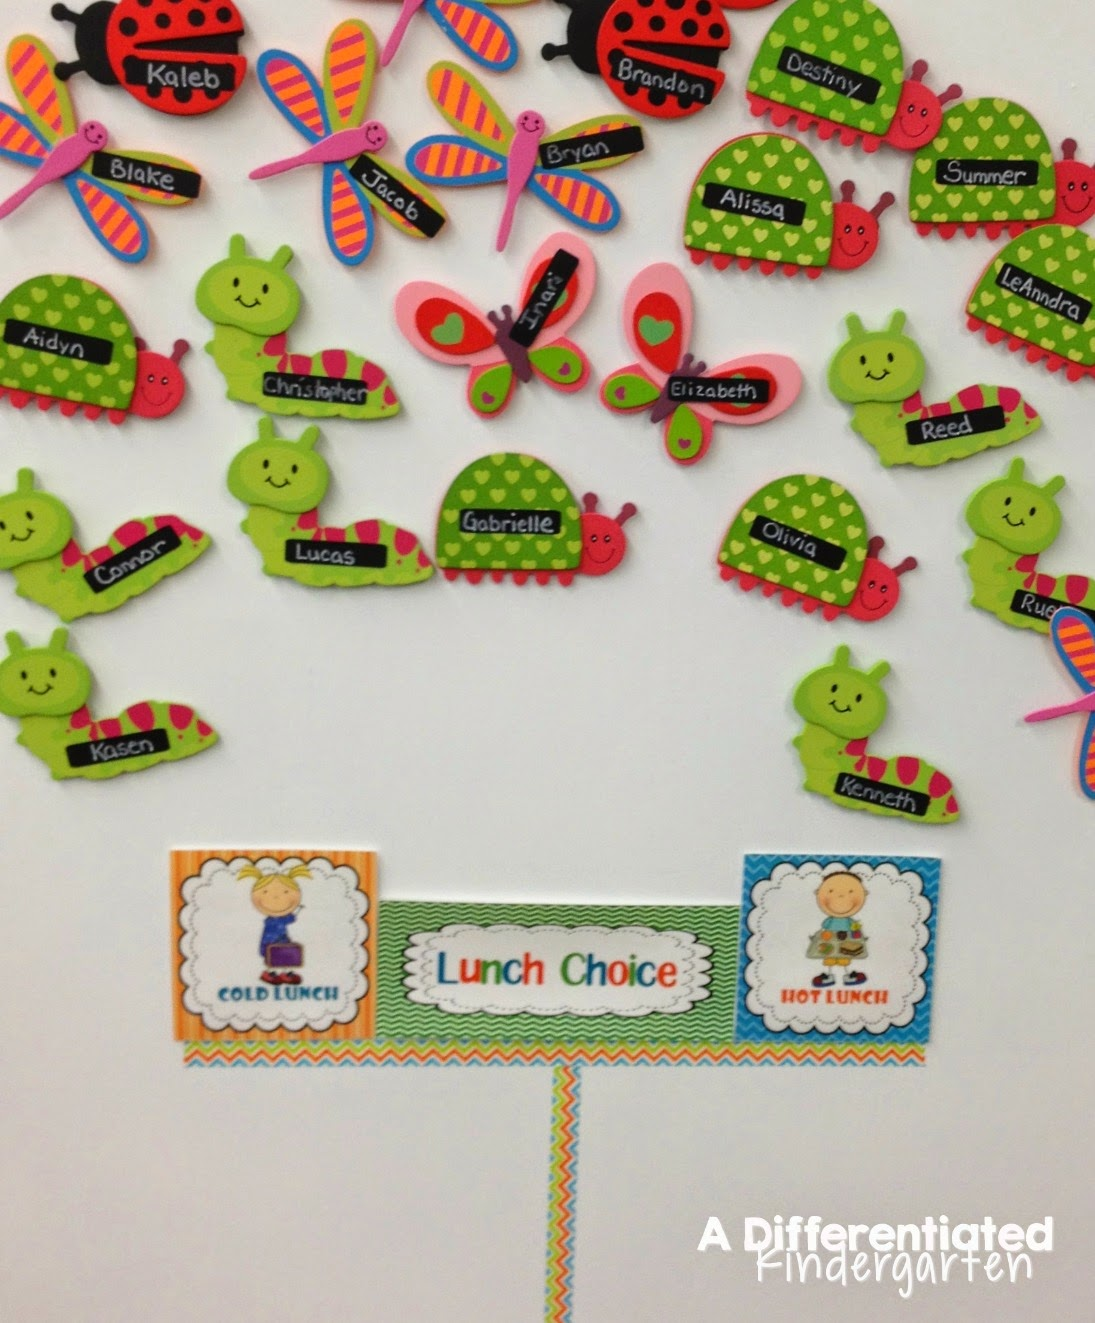 This blog post has daily schedules for a kindergarten classroom